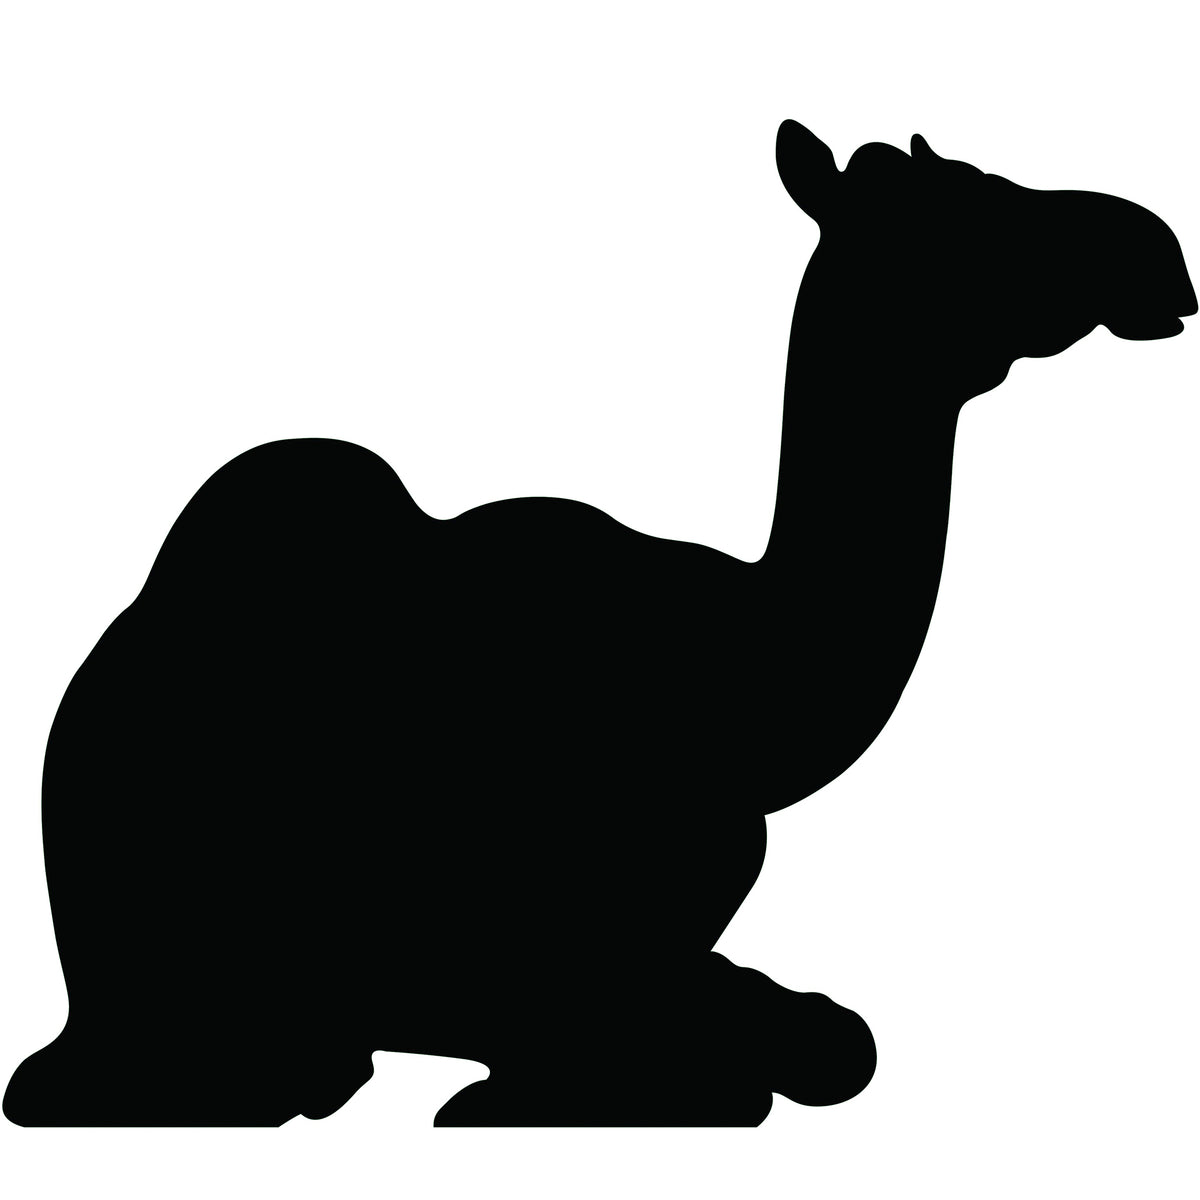 3 ft. 10 in. Sitting Camel Black Silhouette Standee